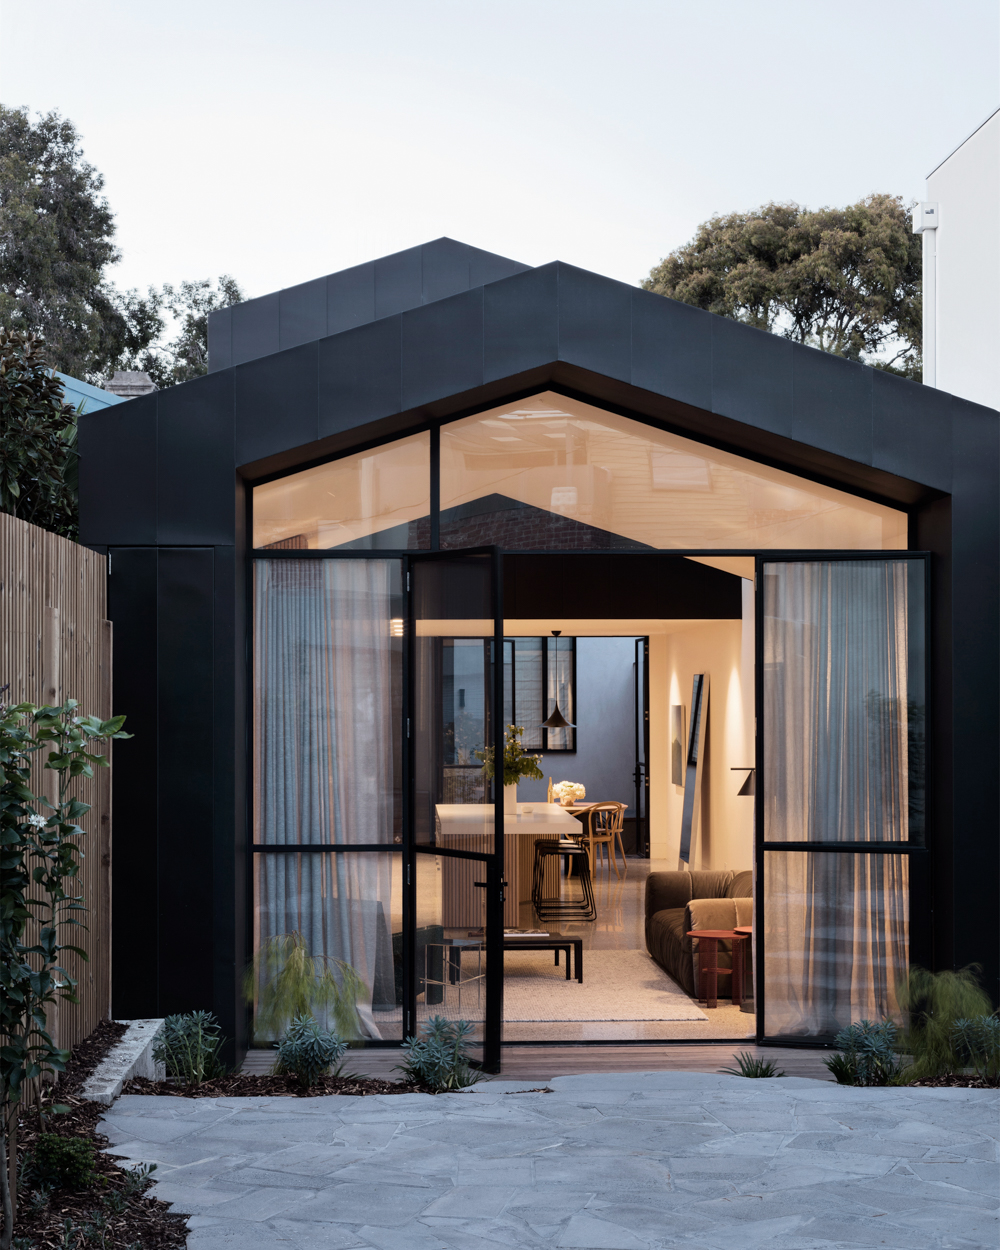 Construction of house in Australia